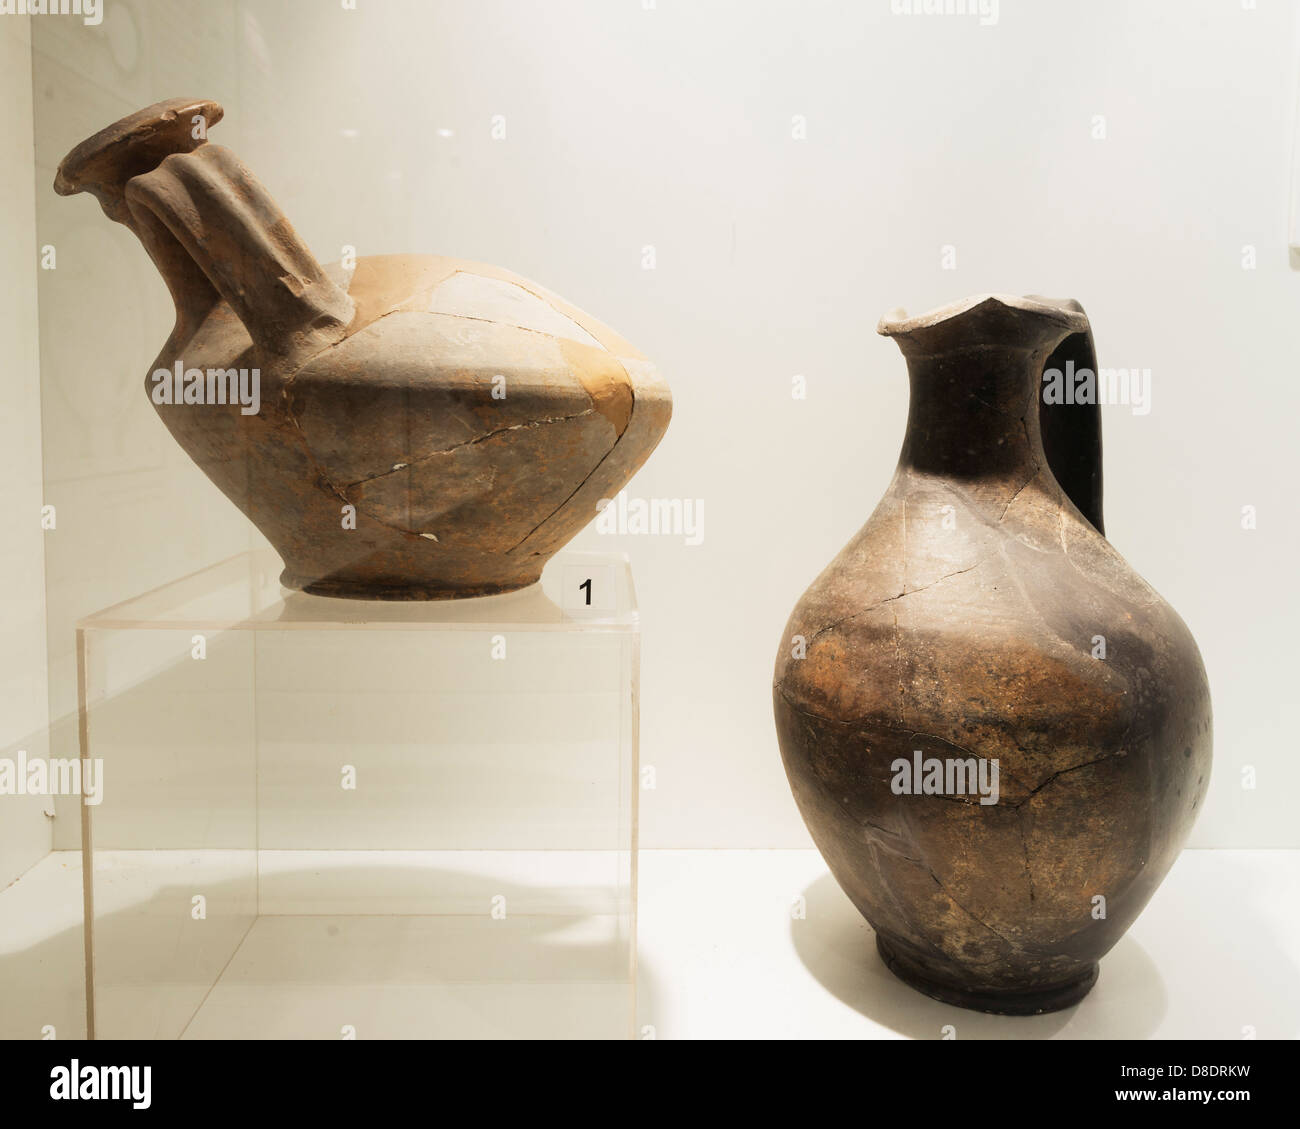 Europe, Bulgaria, Kazanlak; museum at Thracian Tomb of Kazanlak; Unesco World Heritage Site - Stock Image